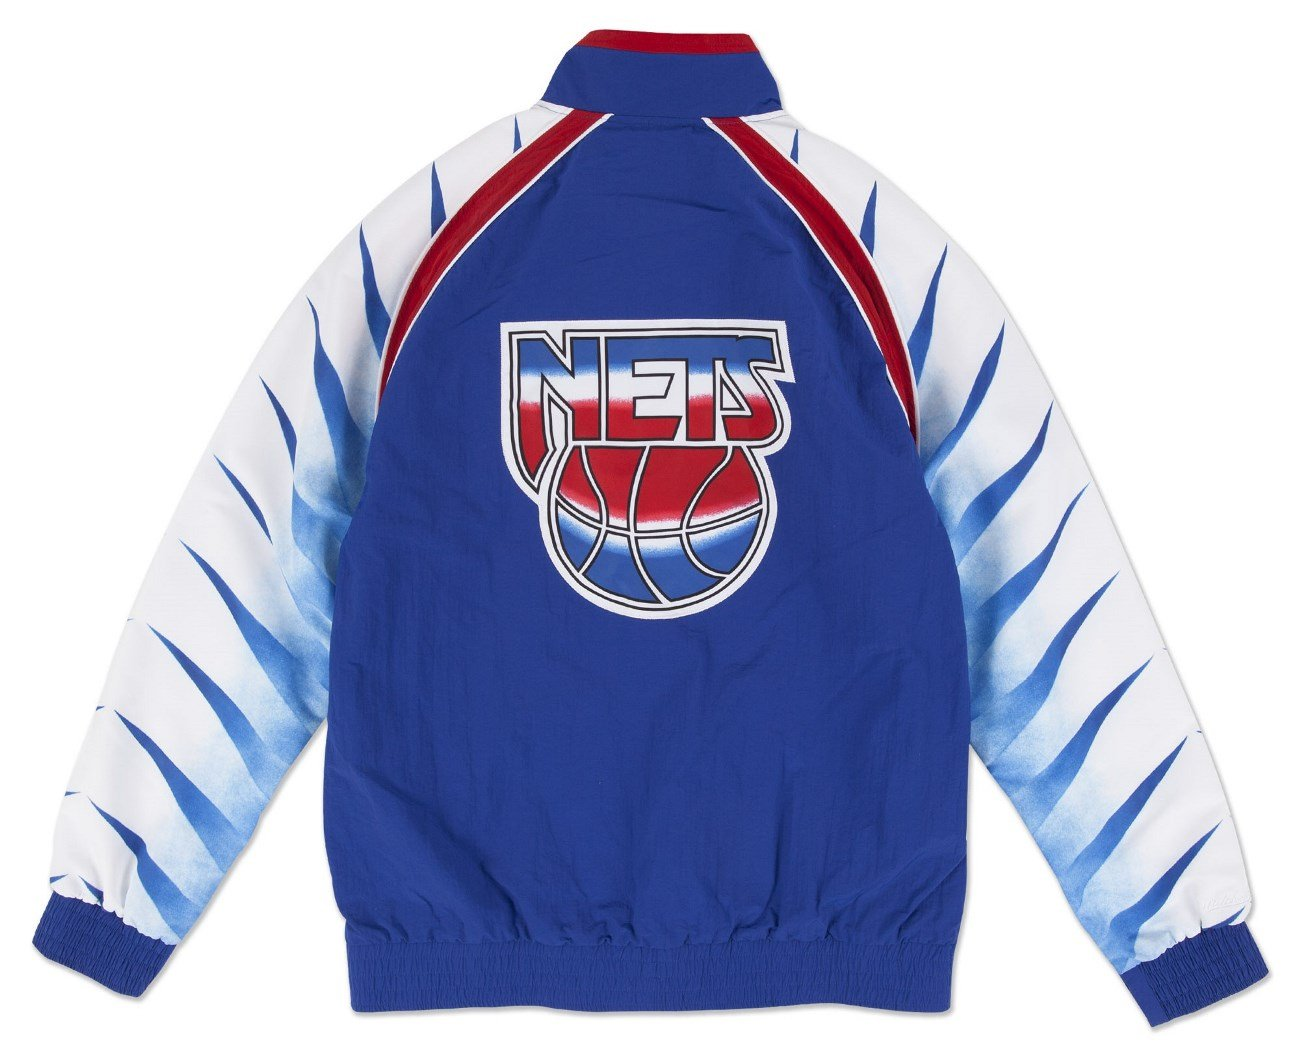 091f8250b04 Amazon.com   Mitchell   Ness New Jersey Nets NBA Authentic 93-94 Warmup  Premium Jacket   Sports   Outdoors